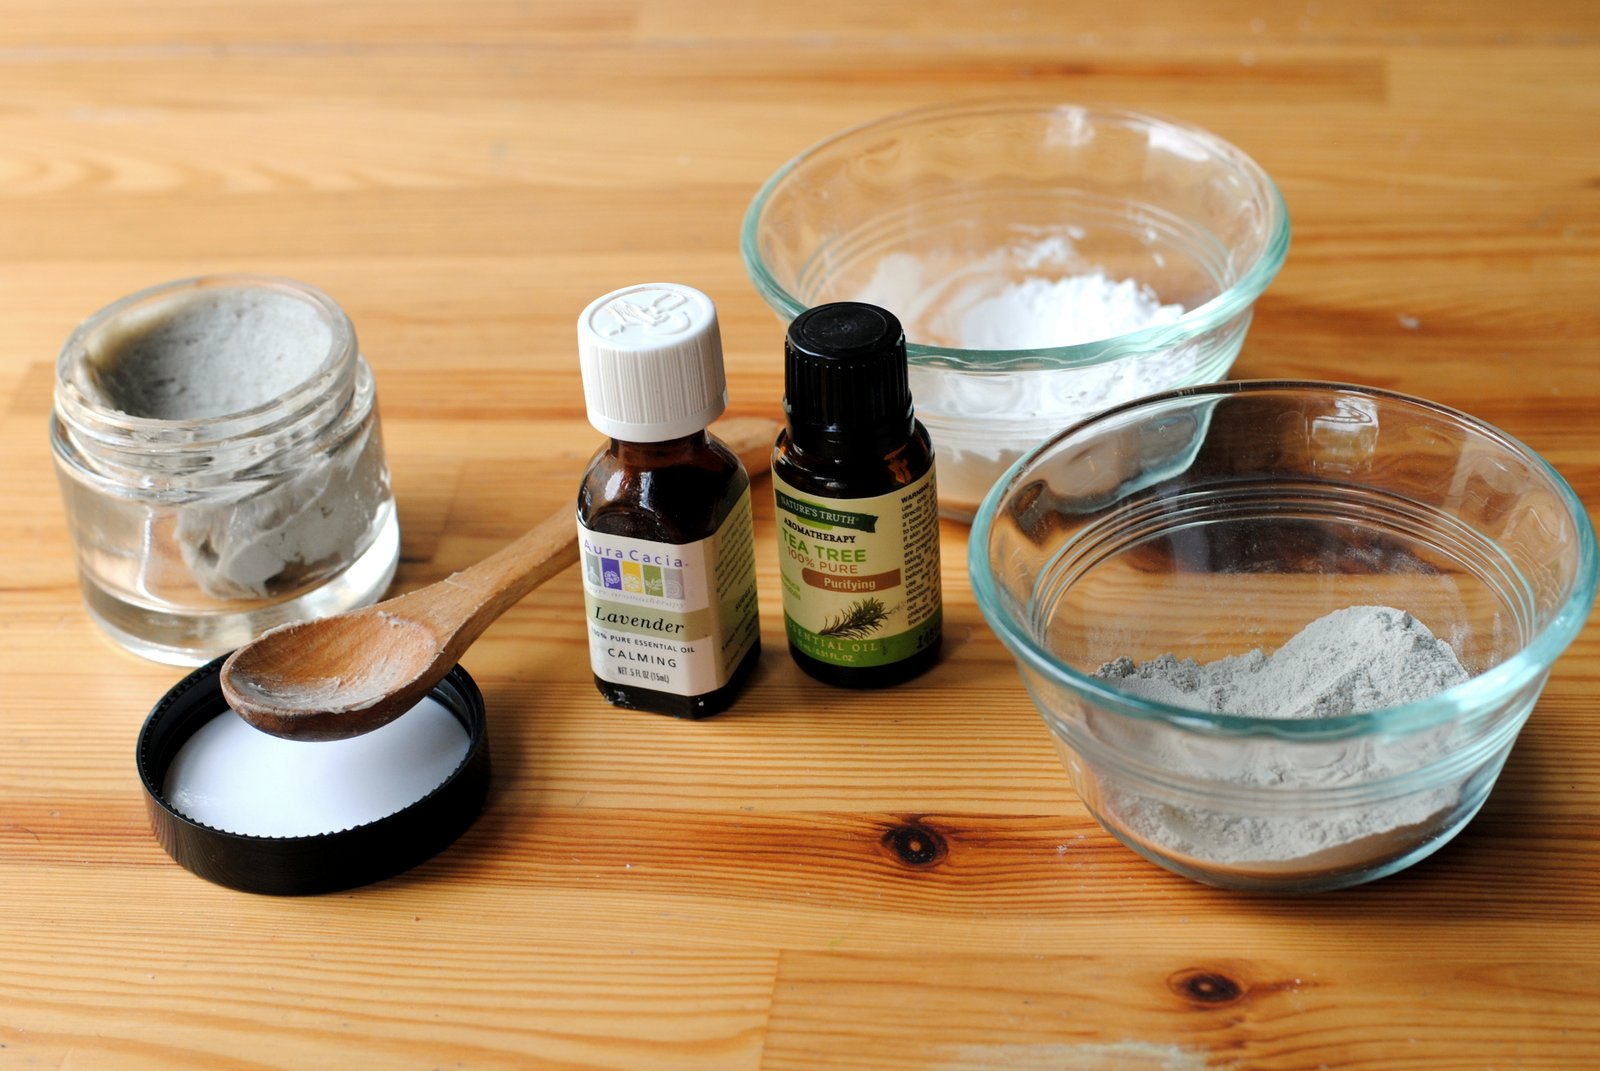 DIY: How to make your own natural deodorant at home